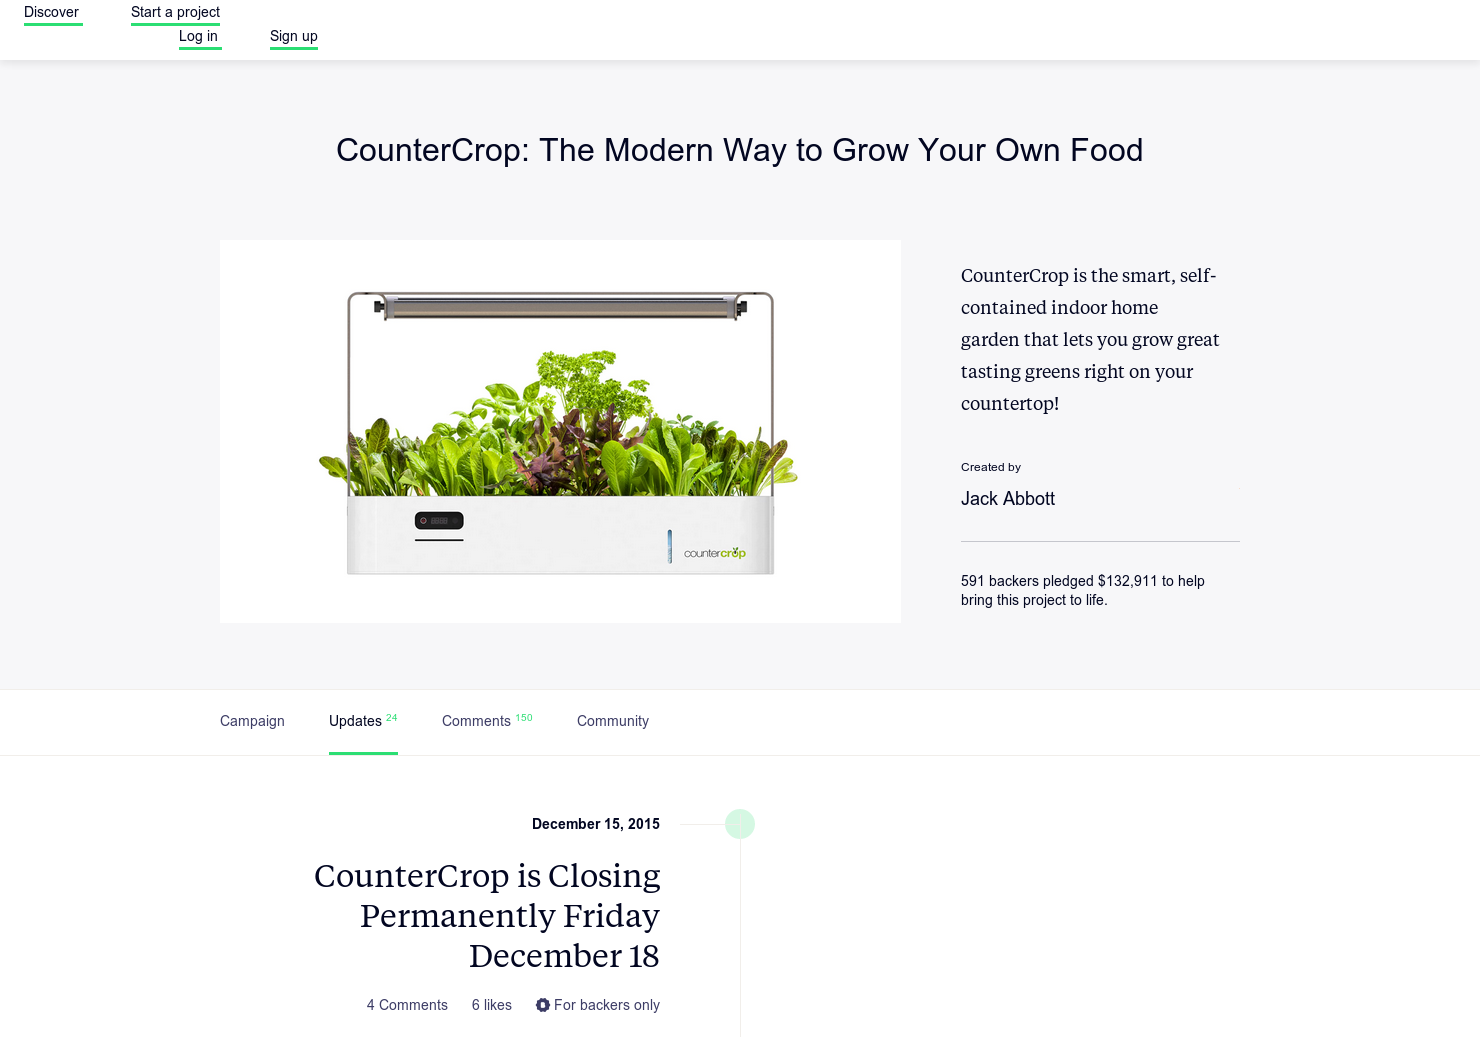 CounterCrop - The Modern Way to Grow Your Own Food